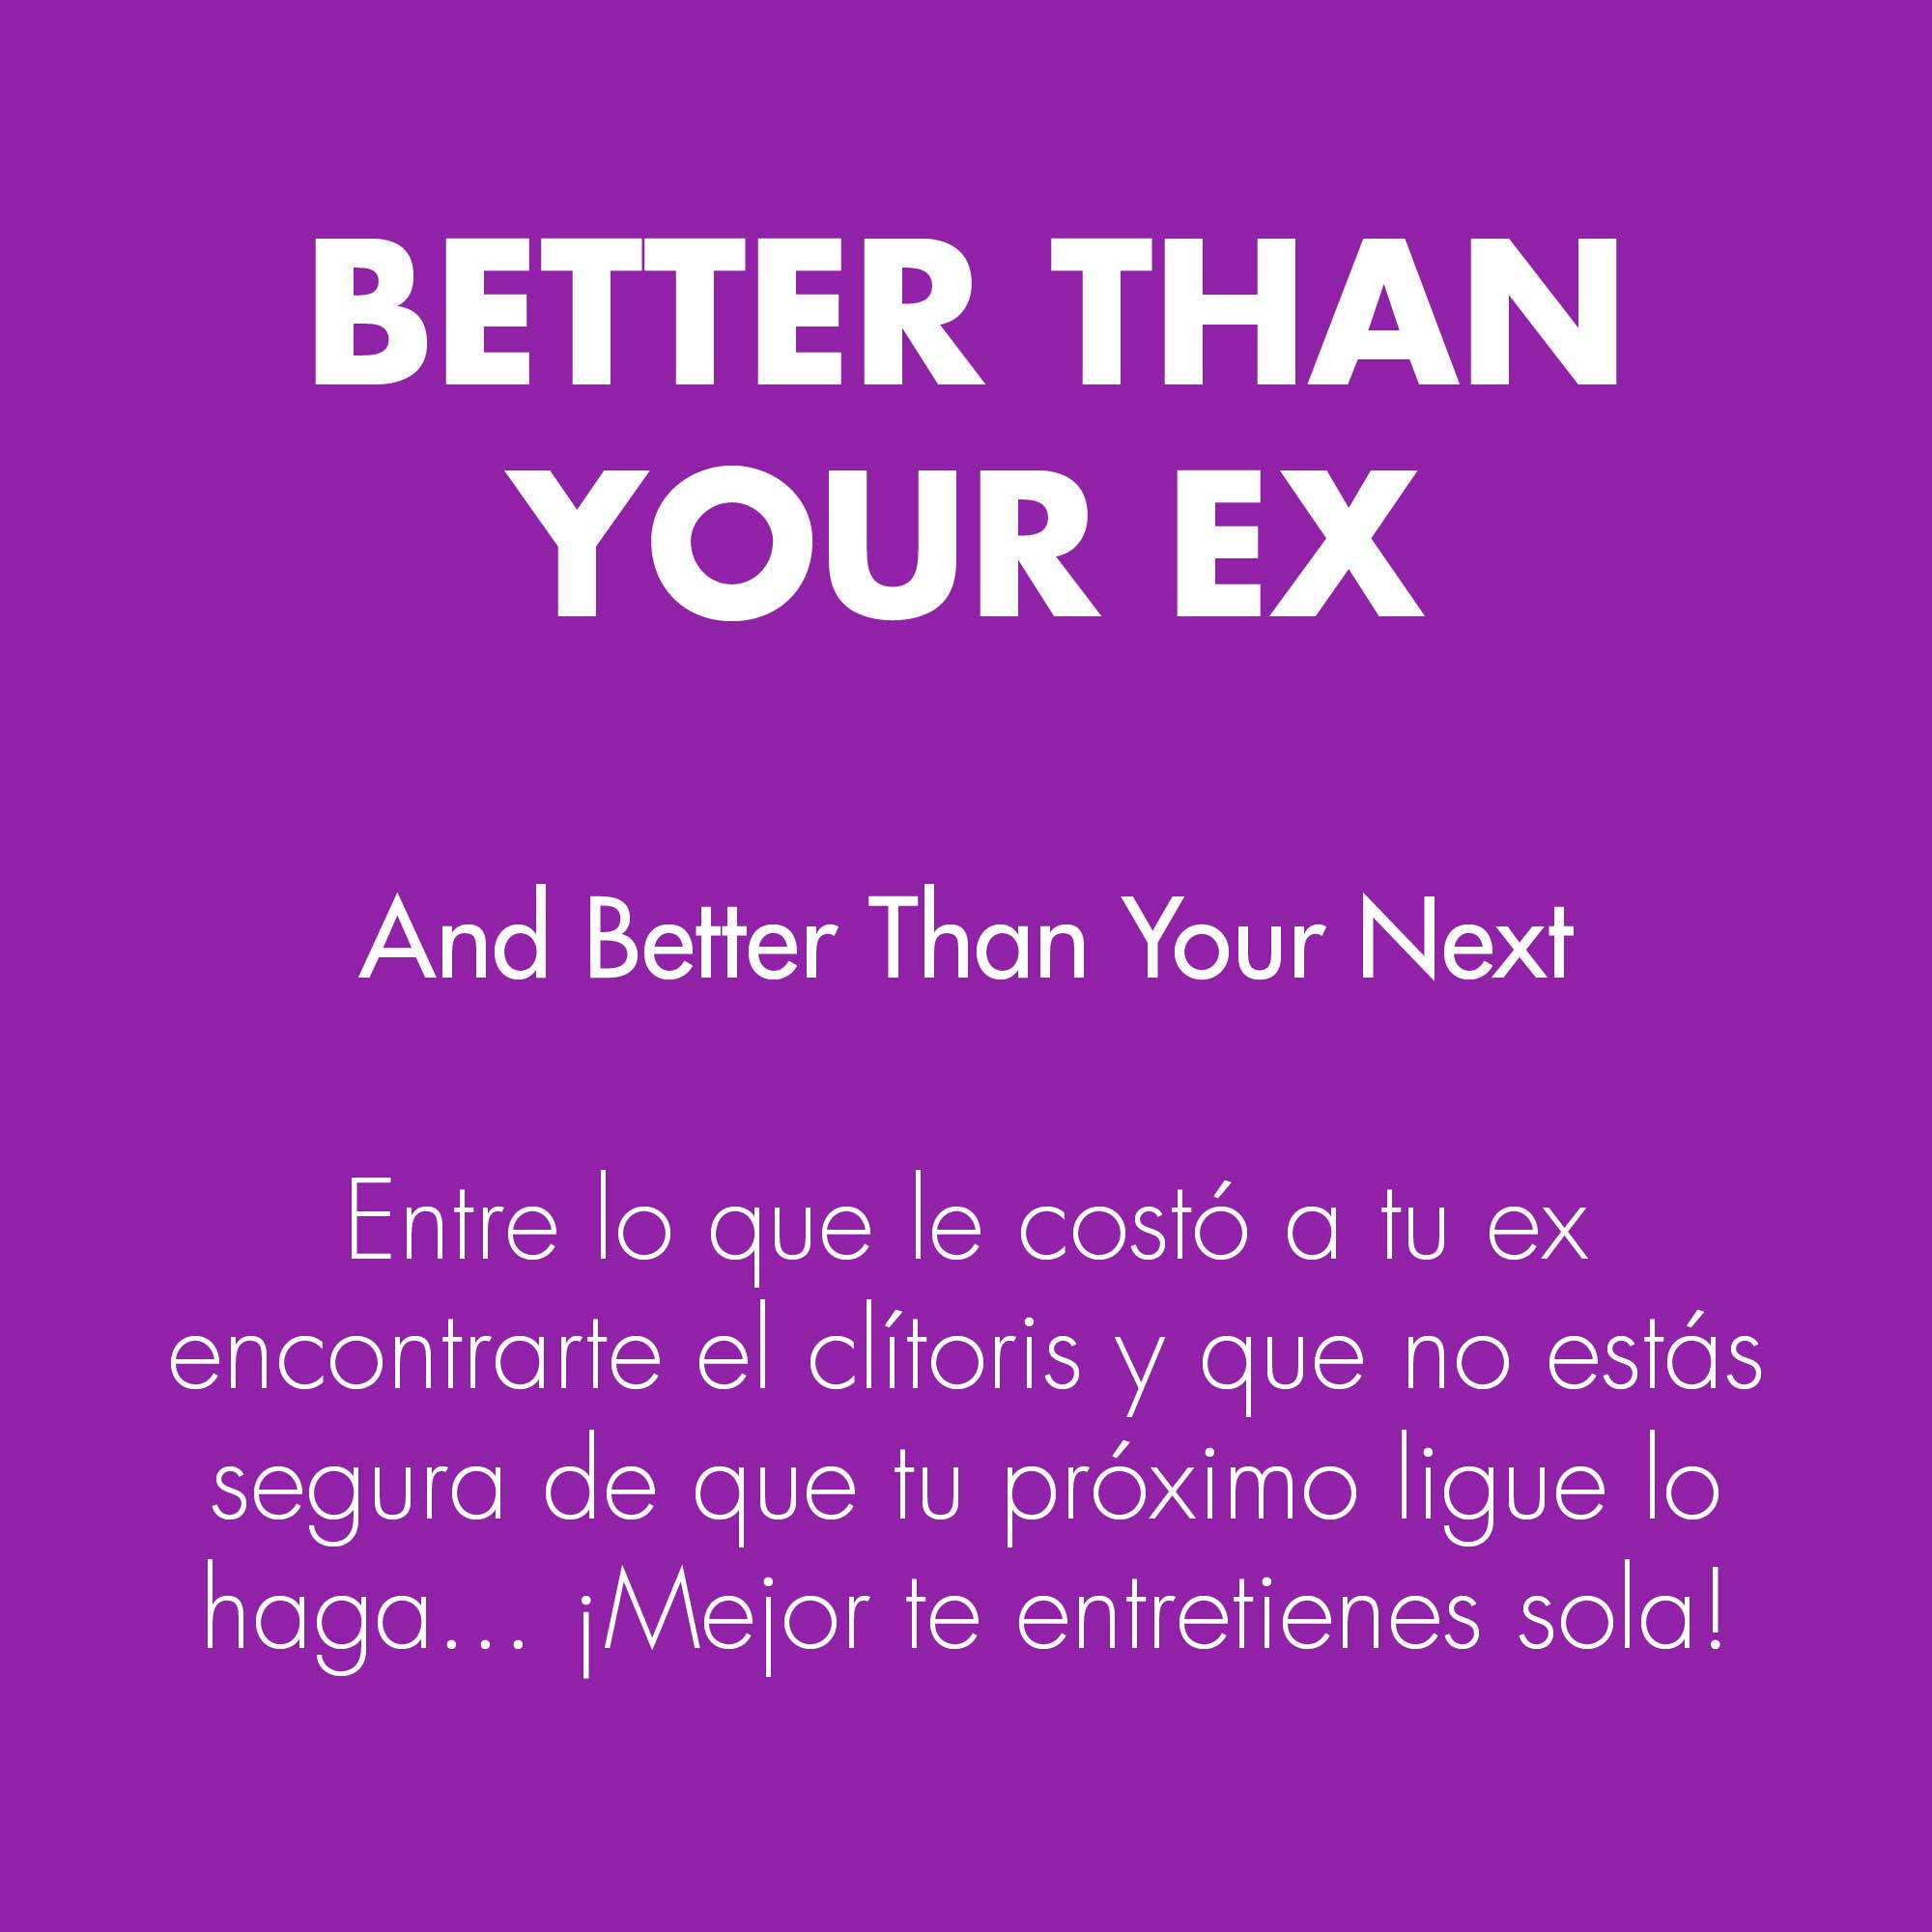 0336_BETTER-THAN-YOUR-EX_3. Jpg